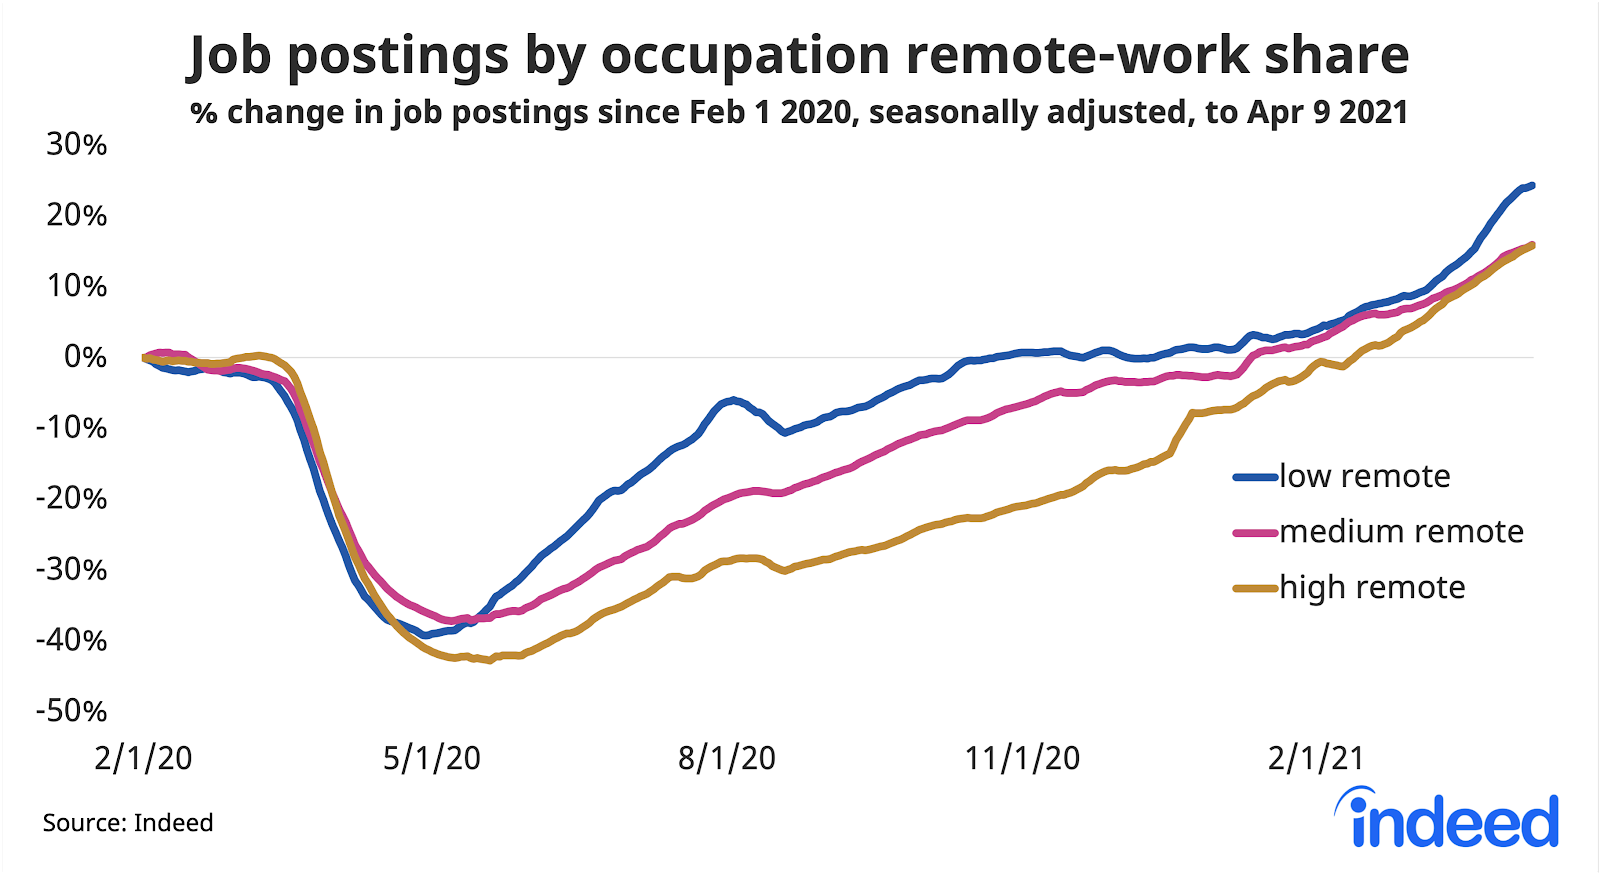 Line graph showing job postings by occupation remote-work share